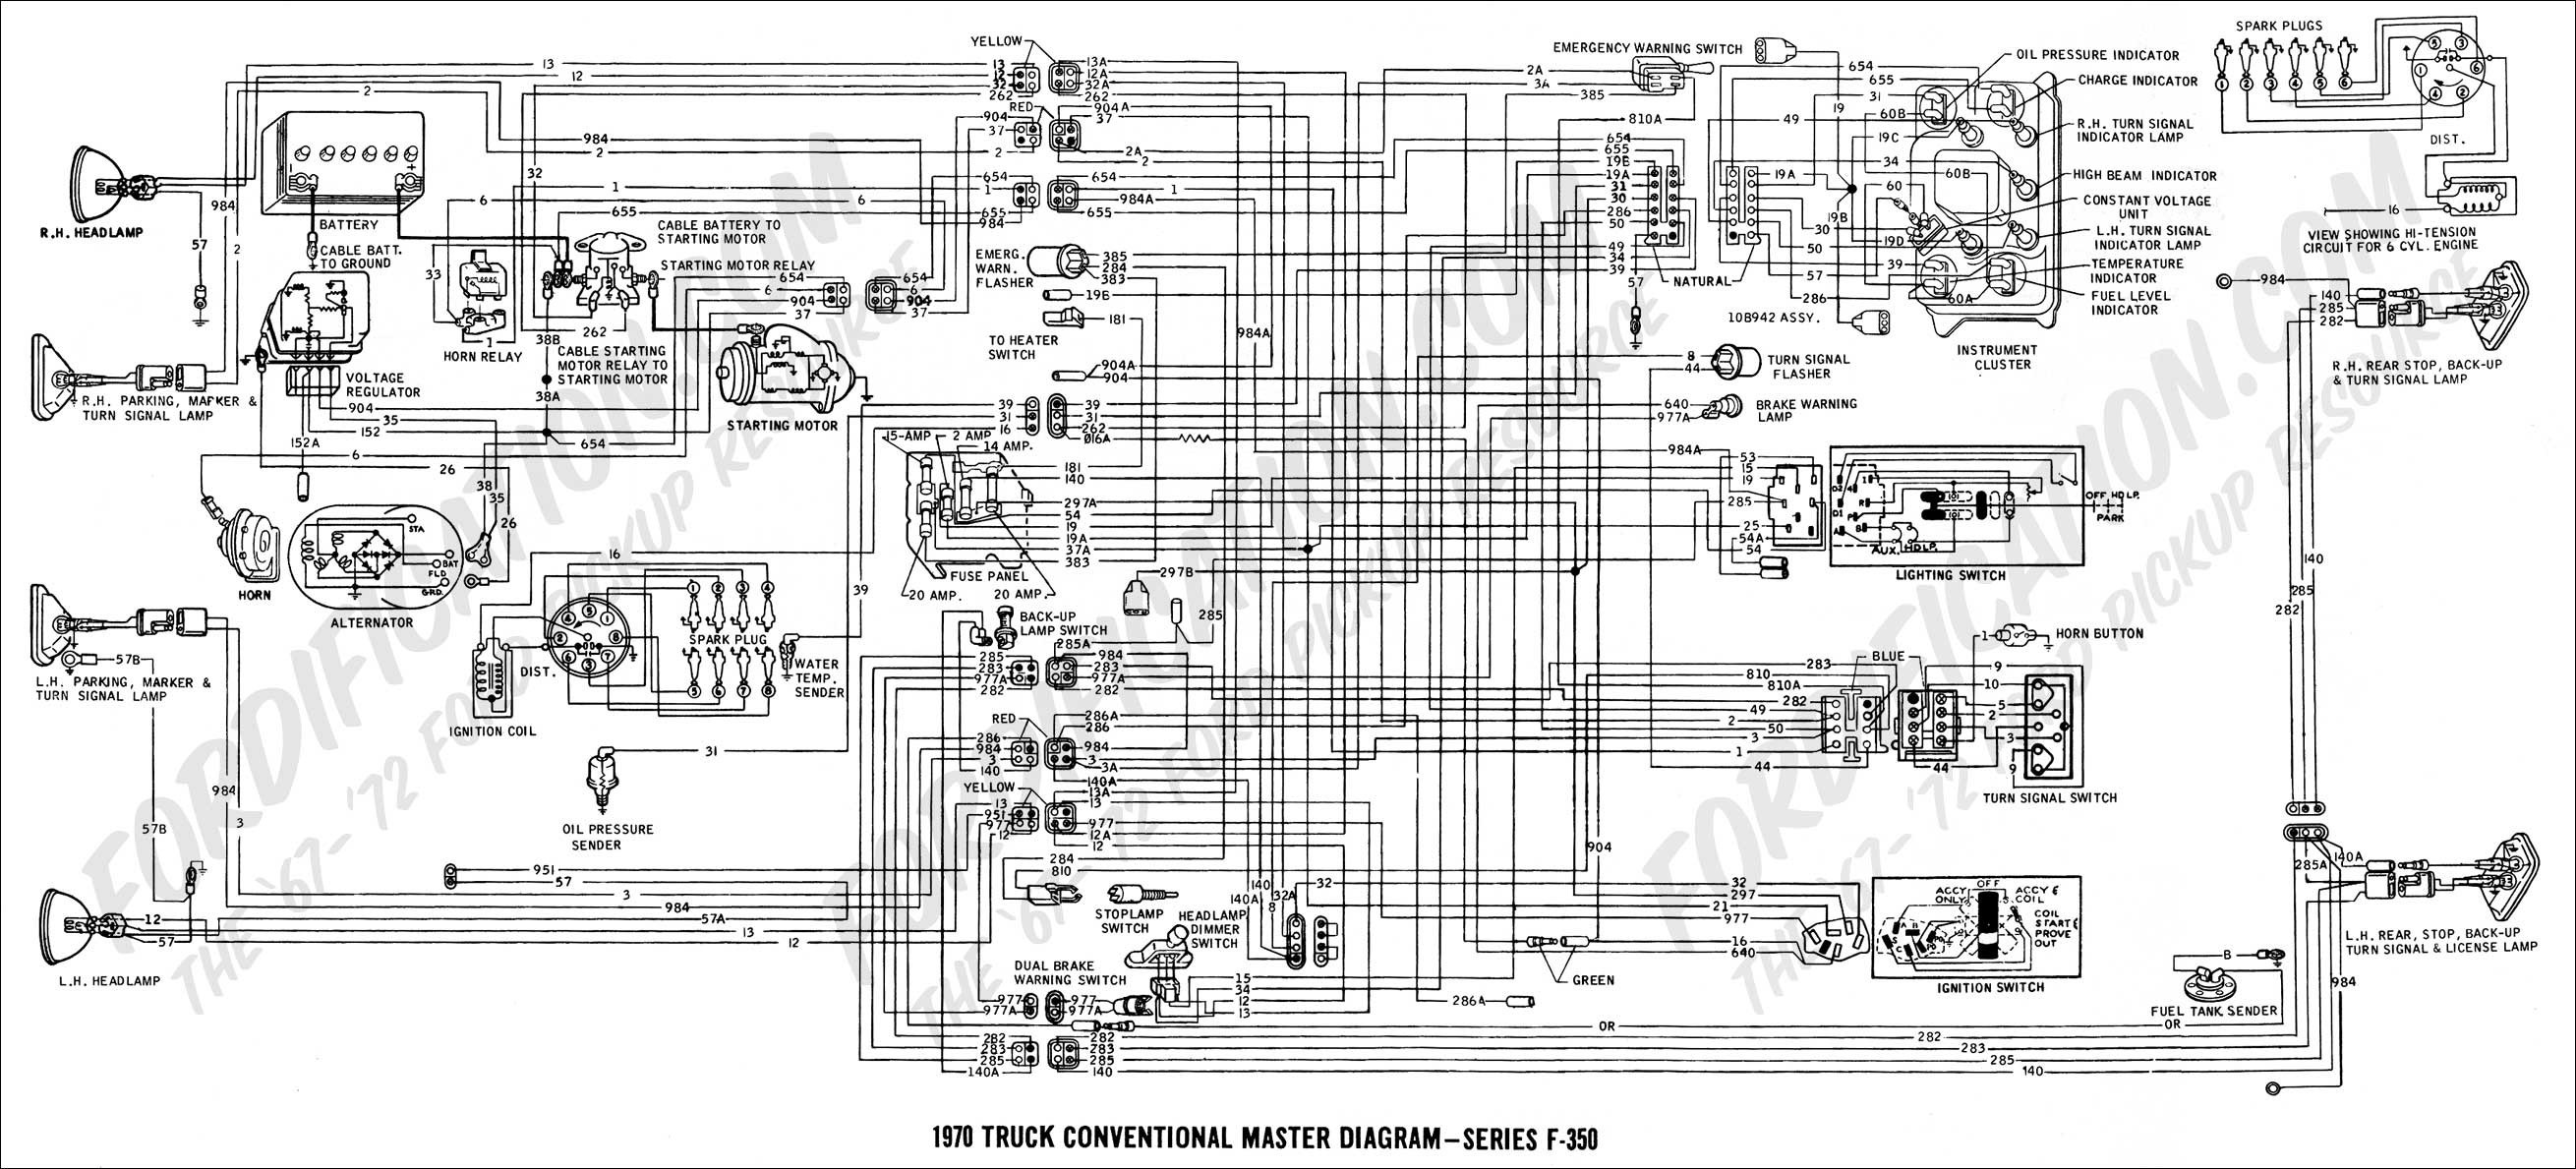 1999 ford 550 Tailight Diagram 2003 ford F350 Super Duty Wiring Diagram Of 1999 ford 550 Tailight Diagram